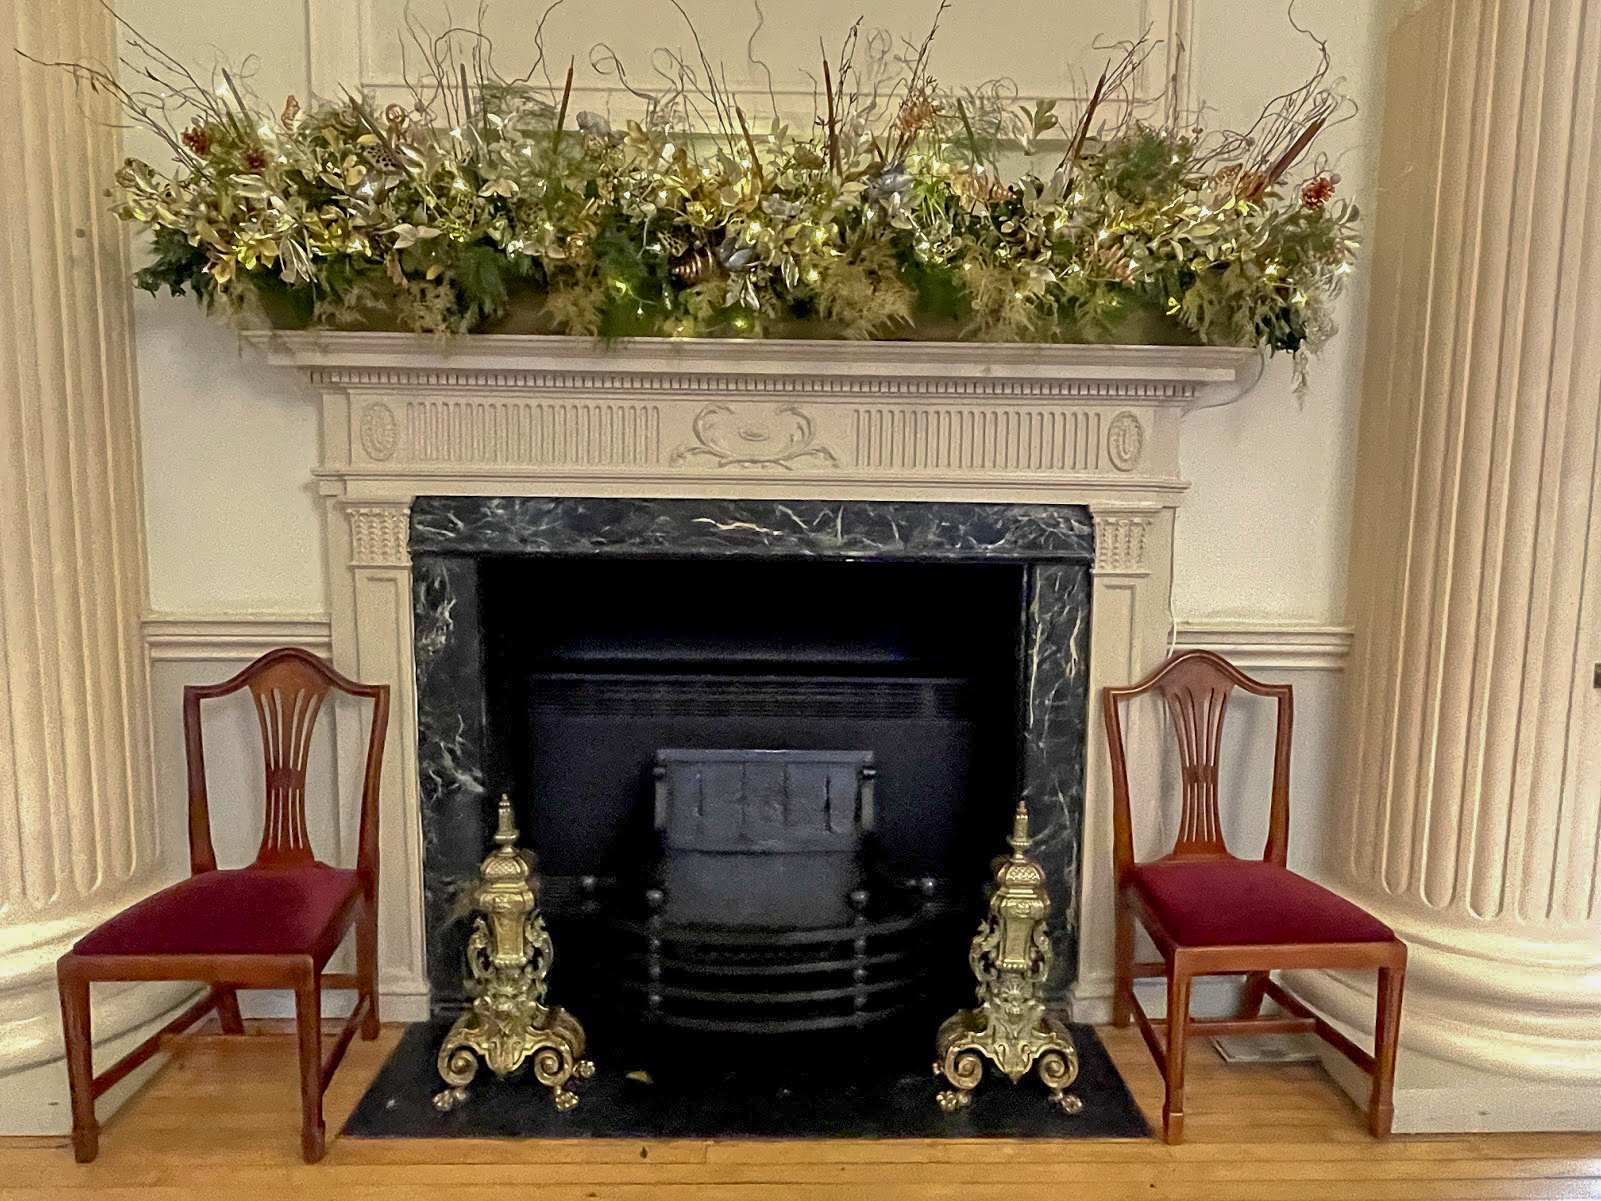 A black fireplace with Christmas decorations on the marble surround in The Pump Room Bath